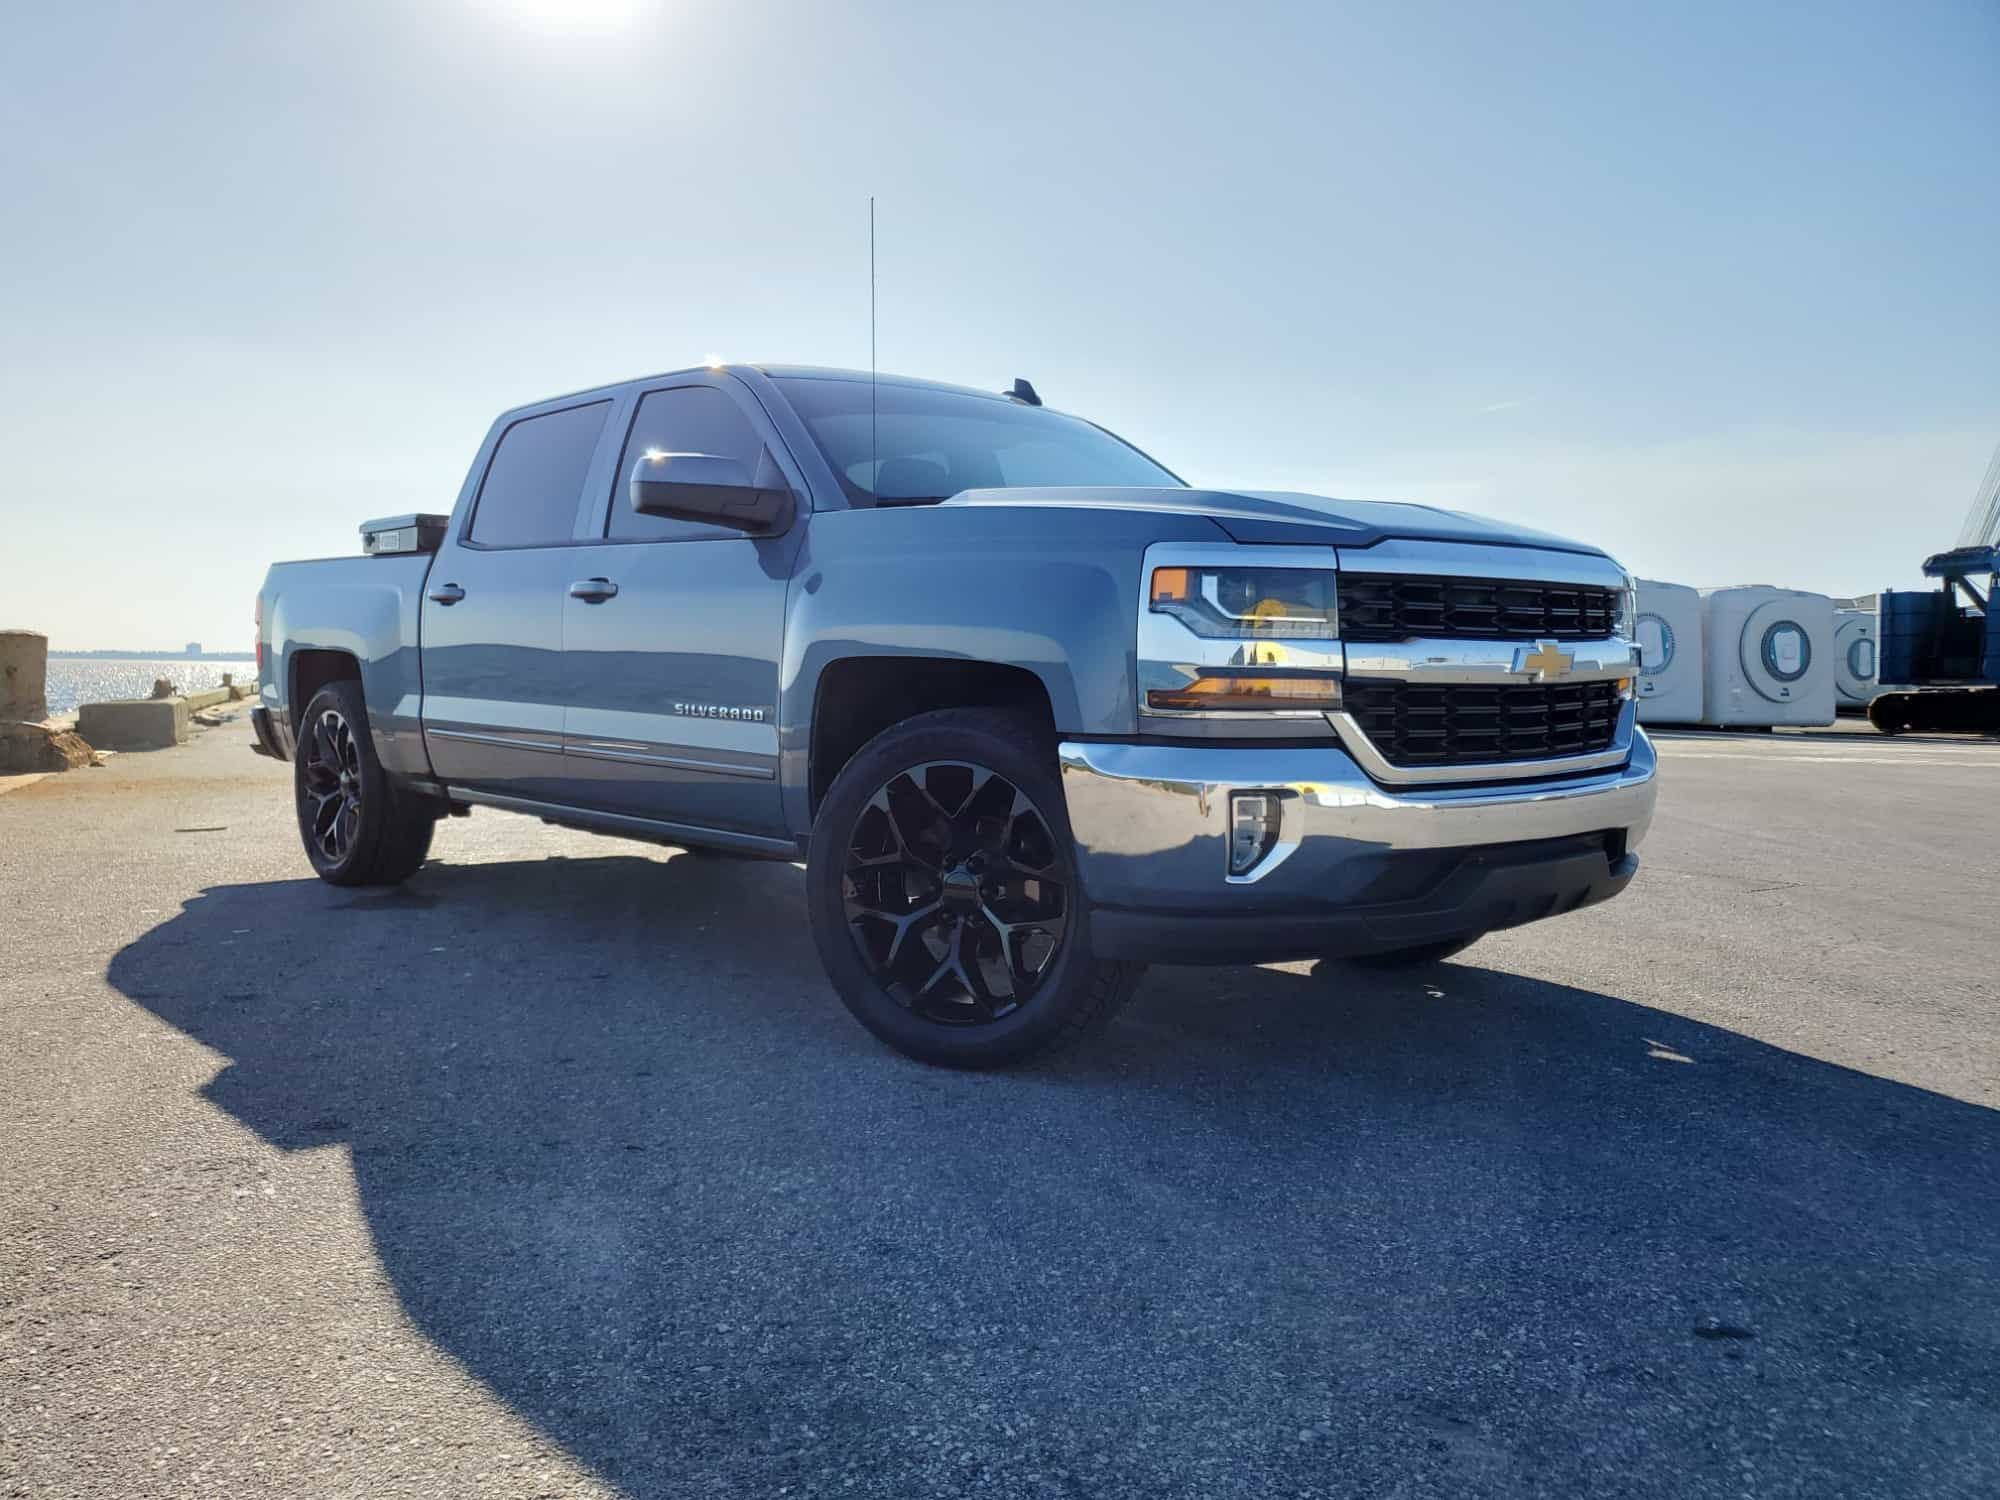 A 2016 Chevrolet Silverado 1500 with the Factory Reproductions Fr59 22x9 +31 wrapped in some Toyo Tires Proxes St Iii 305/45 and riding on Stock Suspension